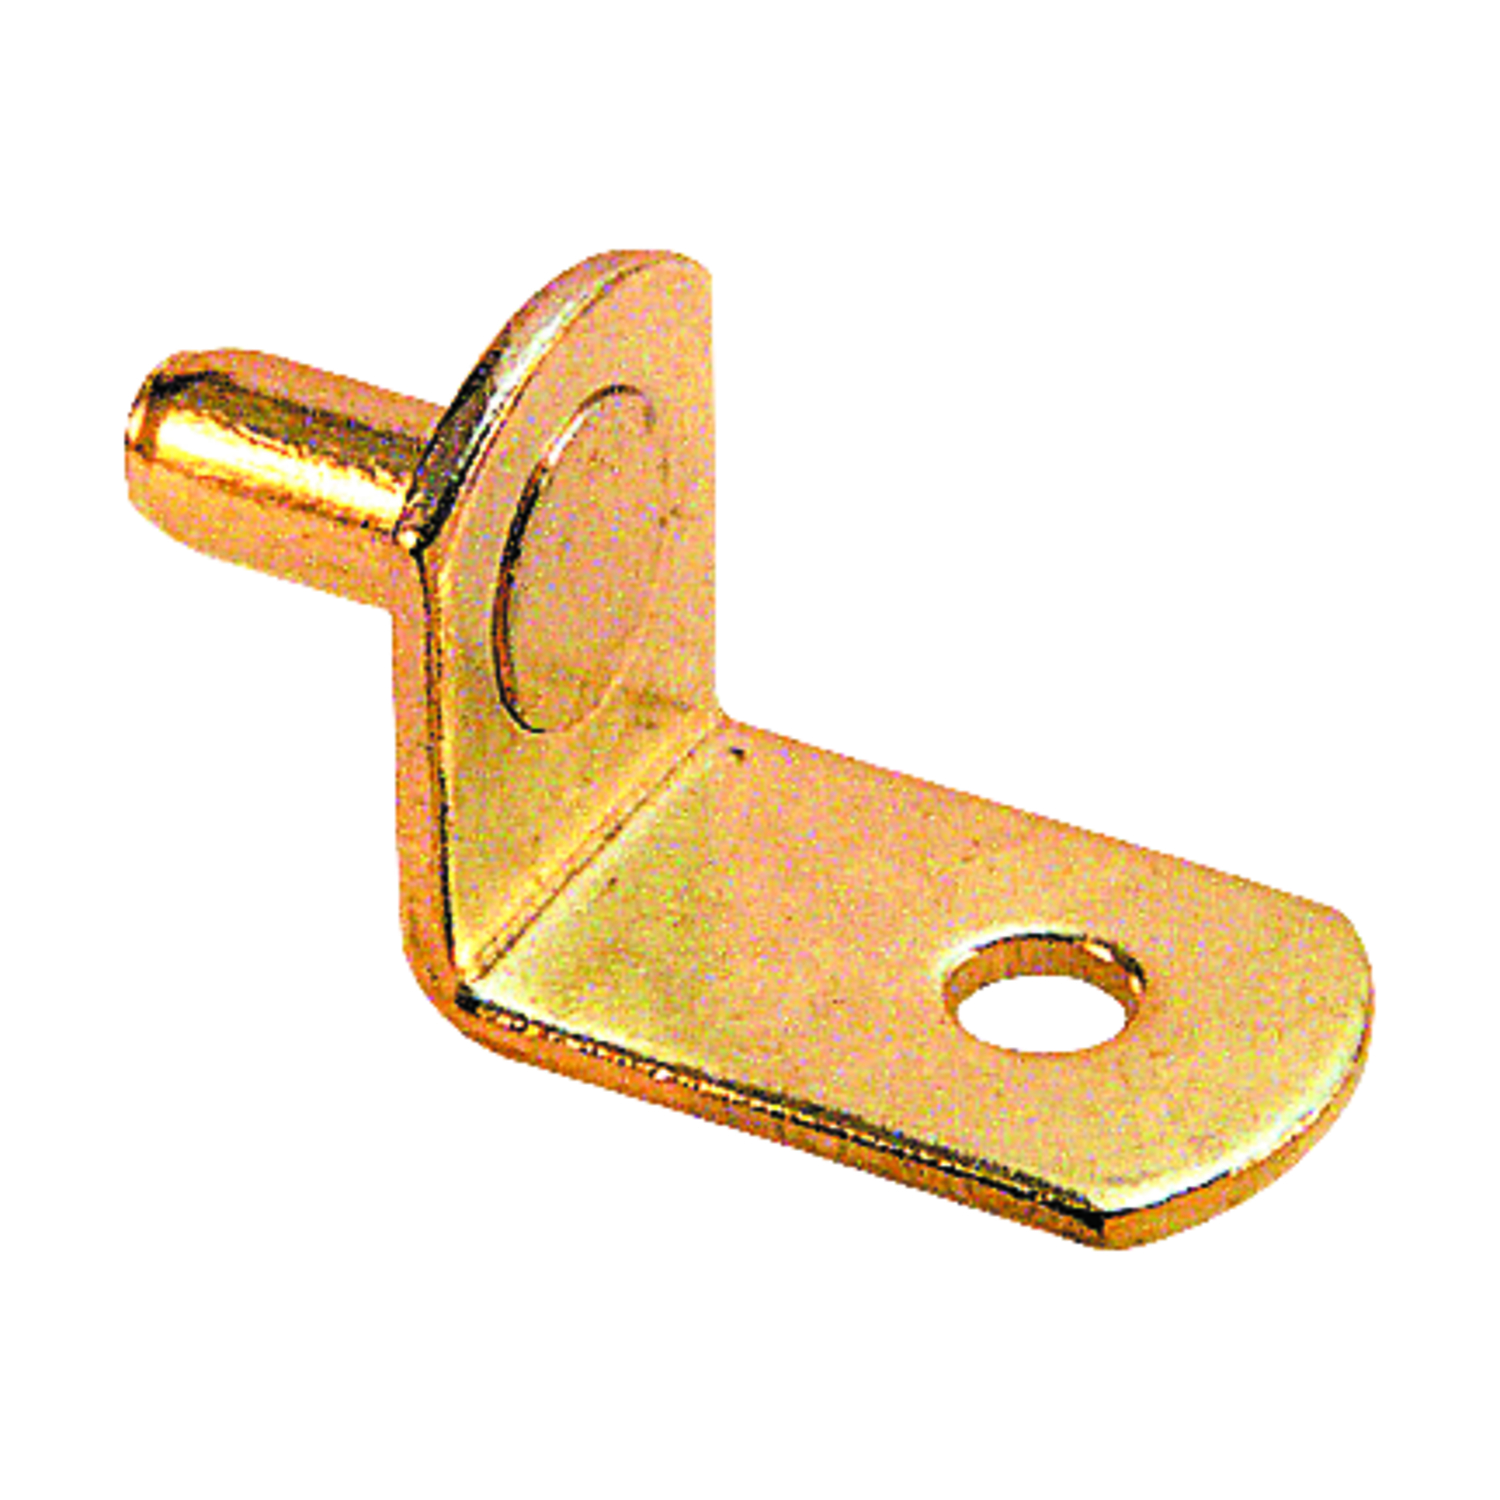 Prime-Line  Brass-Plated  Steel  5 mm Ga. Shelf Support Peg  4.813 in. H x 1.875 in. W x 1.00 in. L